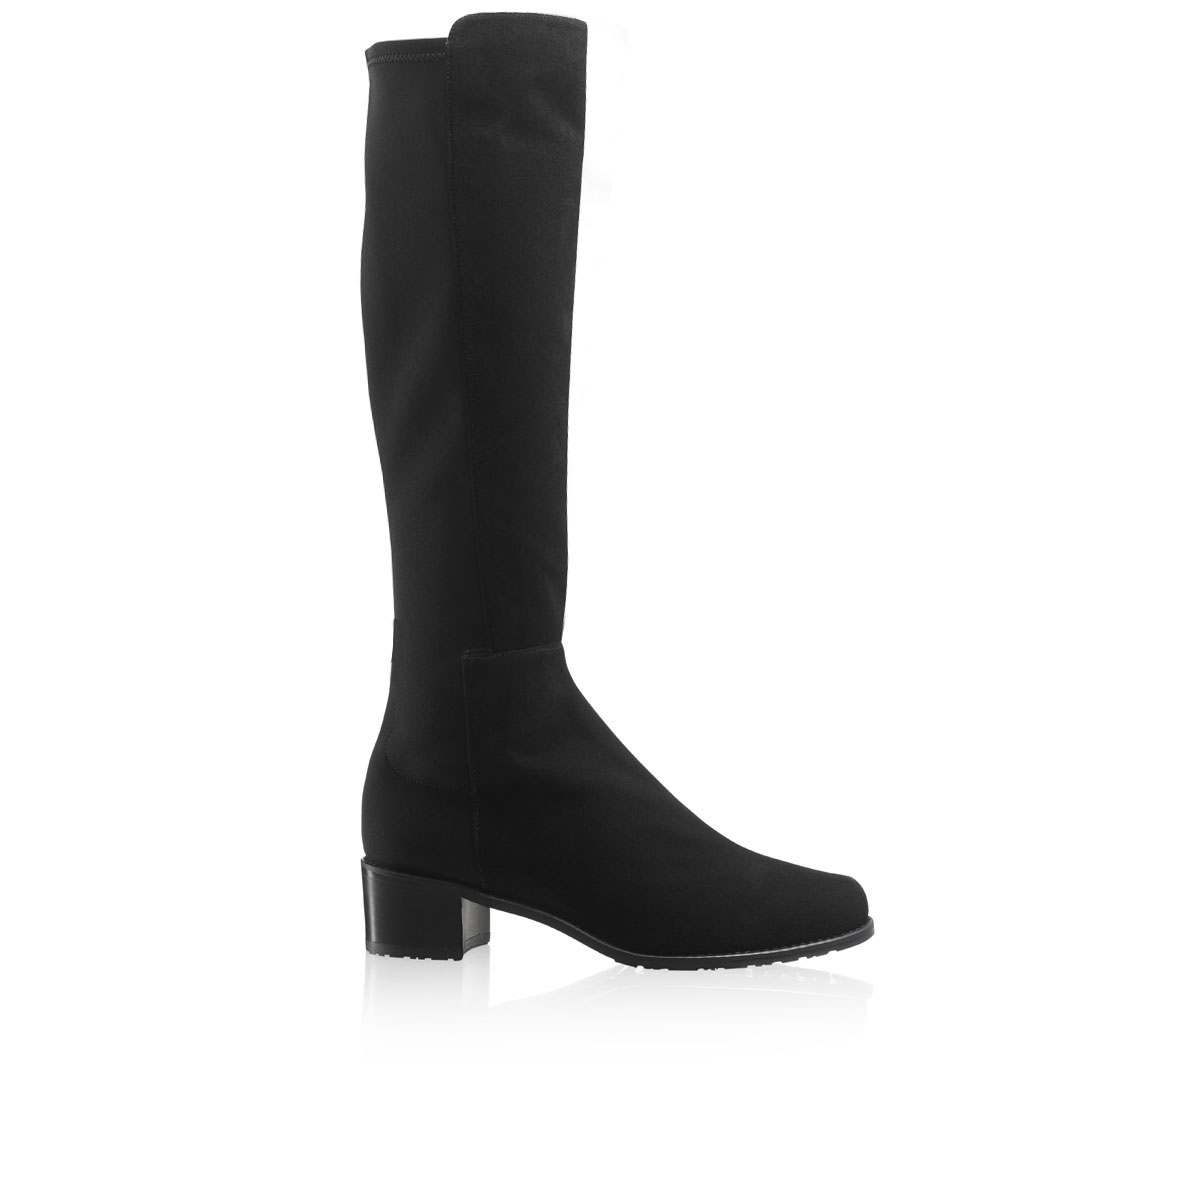 Russell And Bromley HALFNHALF Stretch Knee-High Boot